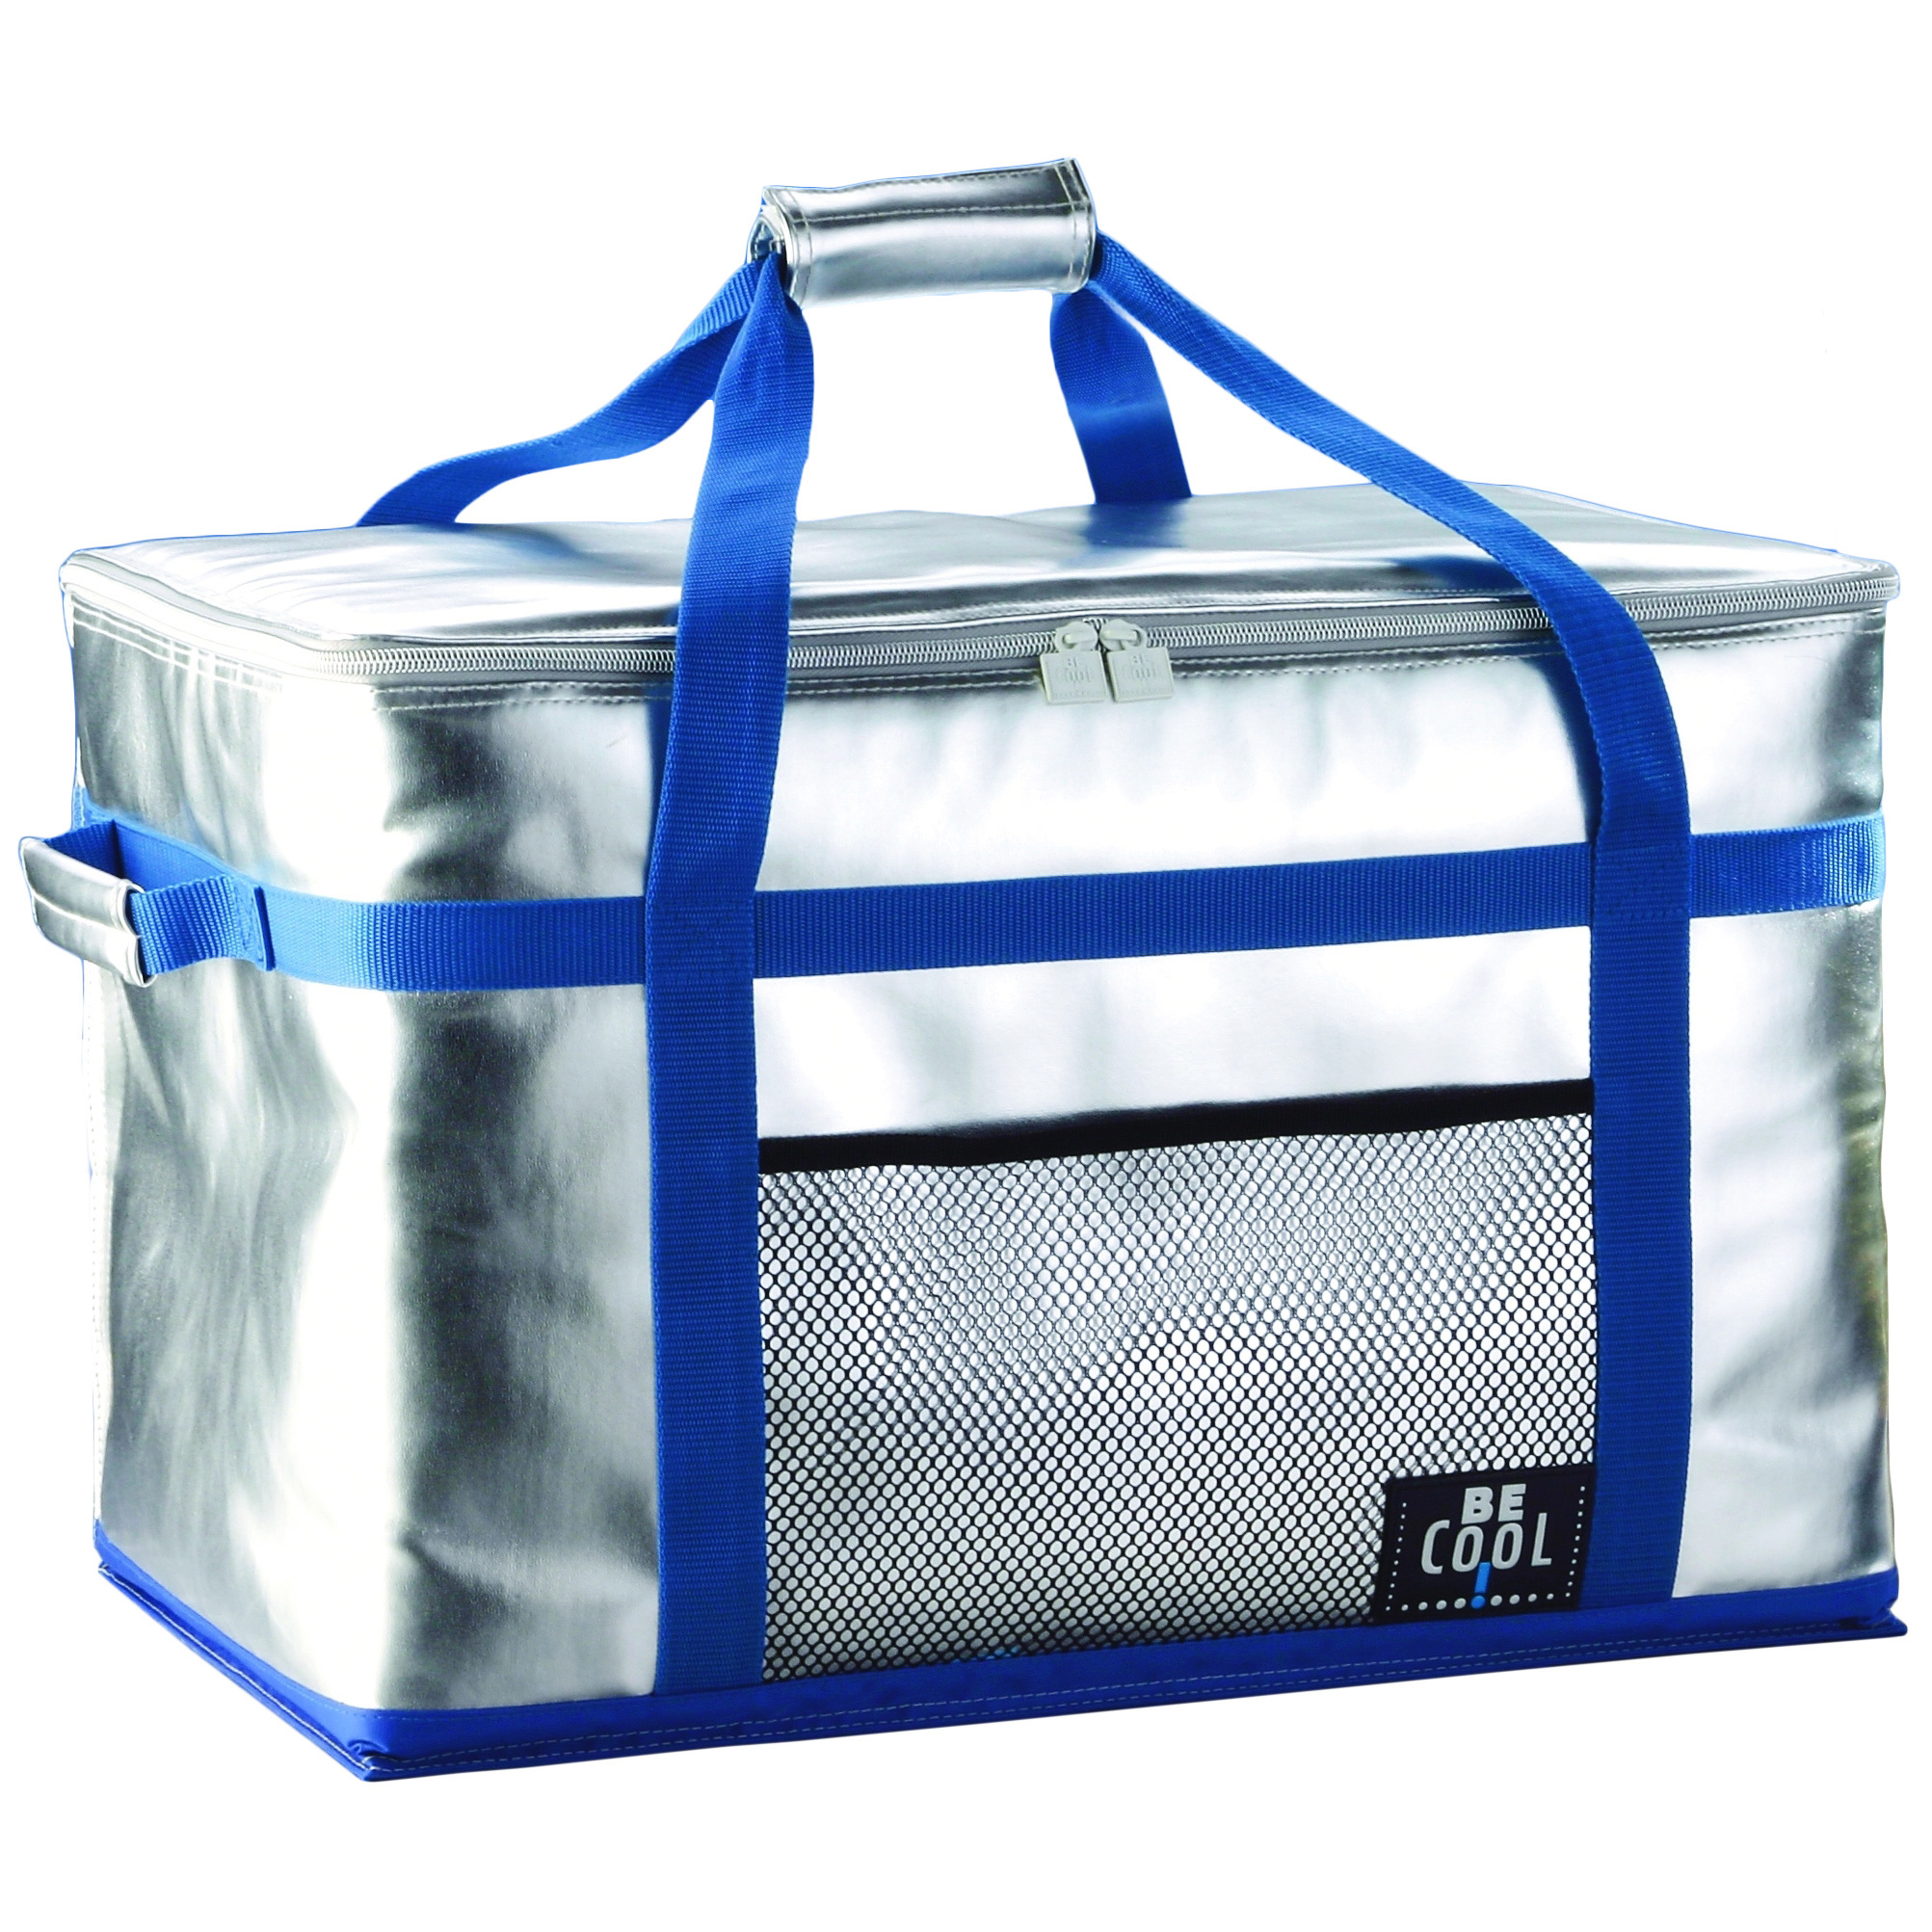 9 be cool silver blue lunch box